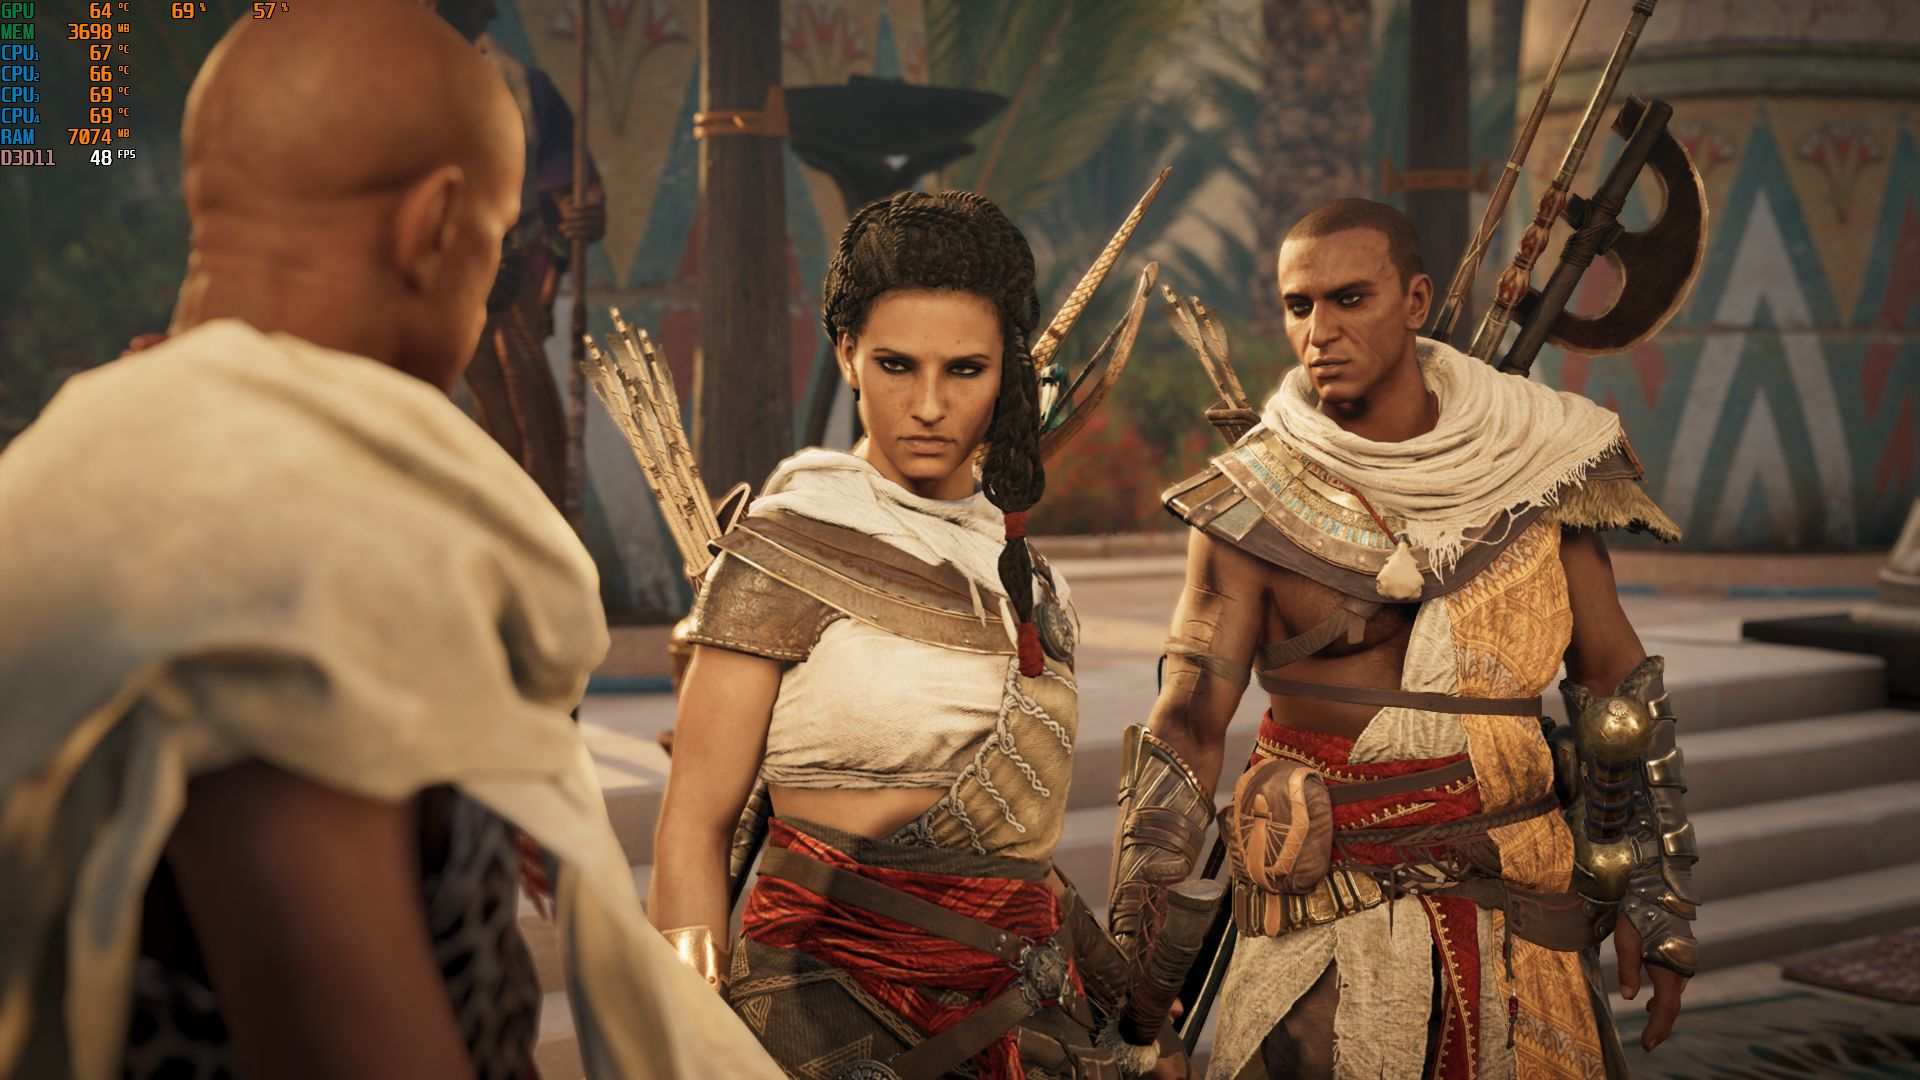 00077.Jpg - Assassin's Creed: Origins